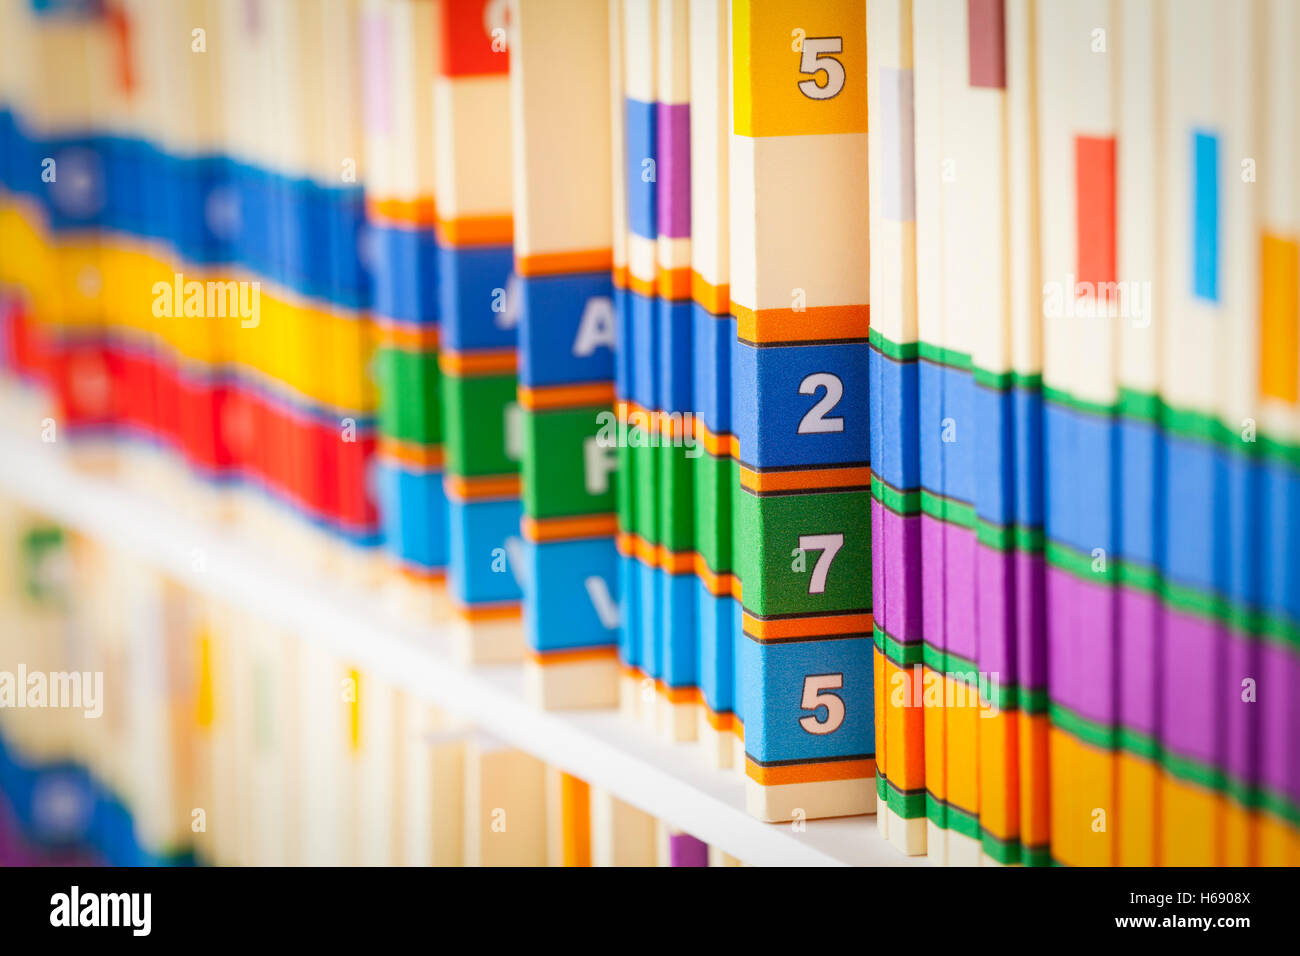 Shelf of Medical Files in Office Setting. - Stock Image